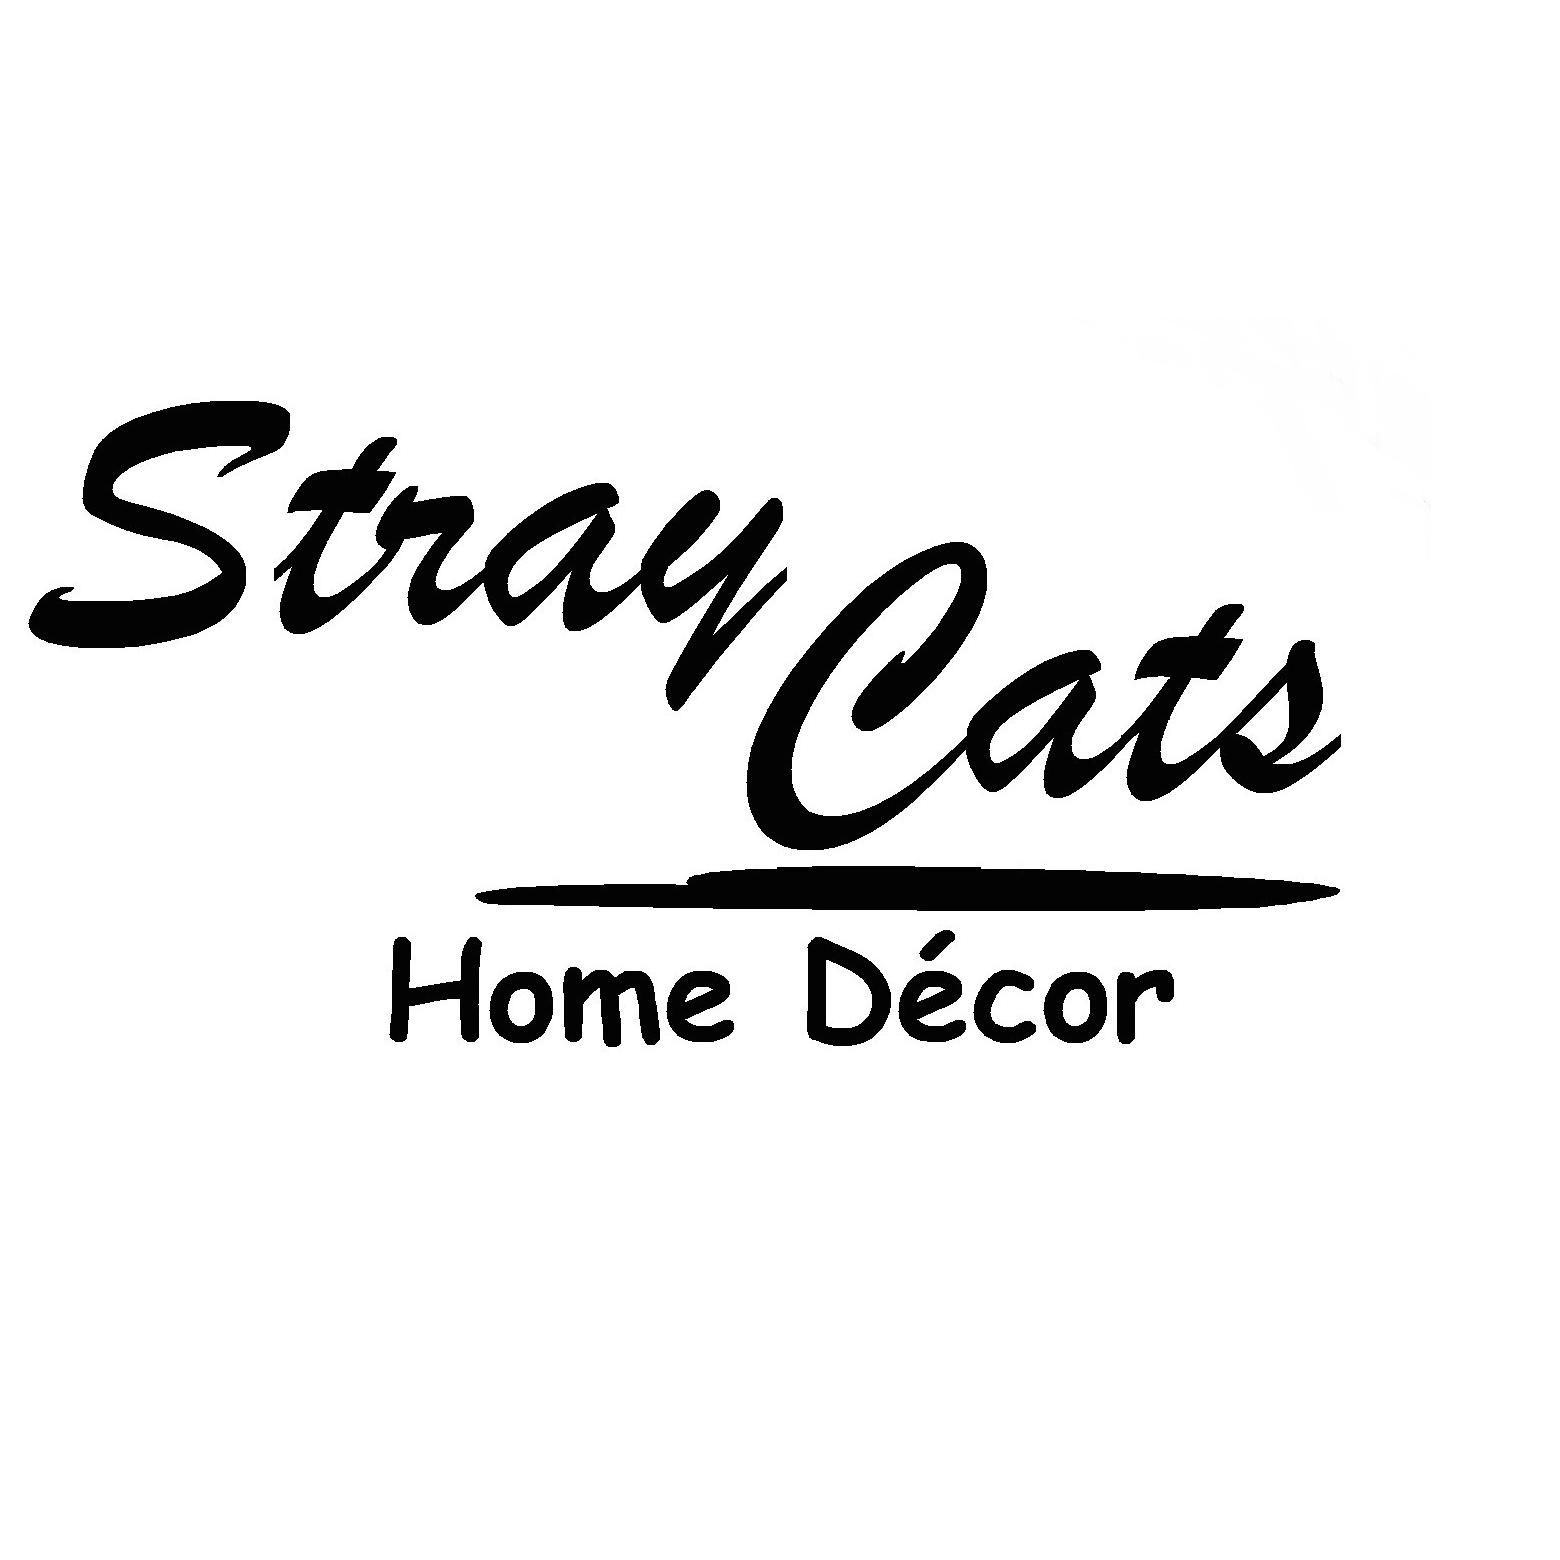 Stray cats home decor coupons near me in birmingham 8coupons for Home accessories near me